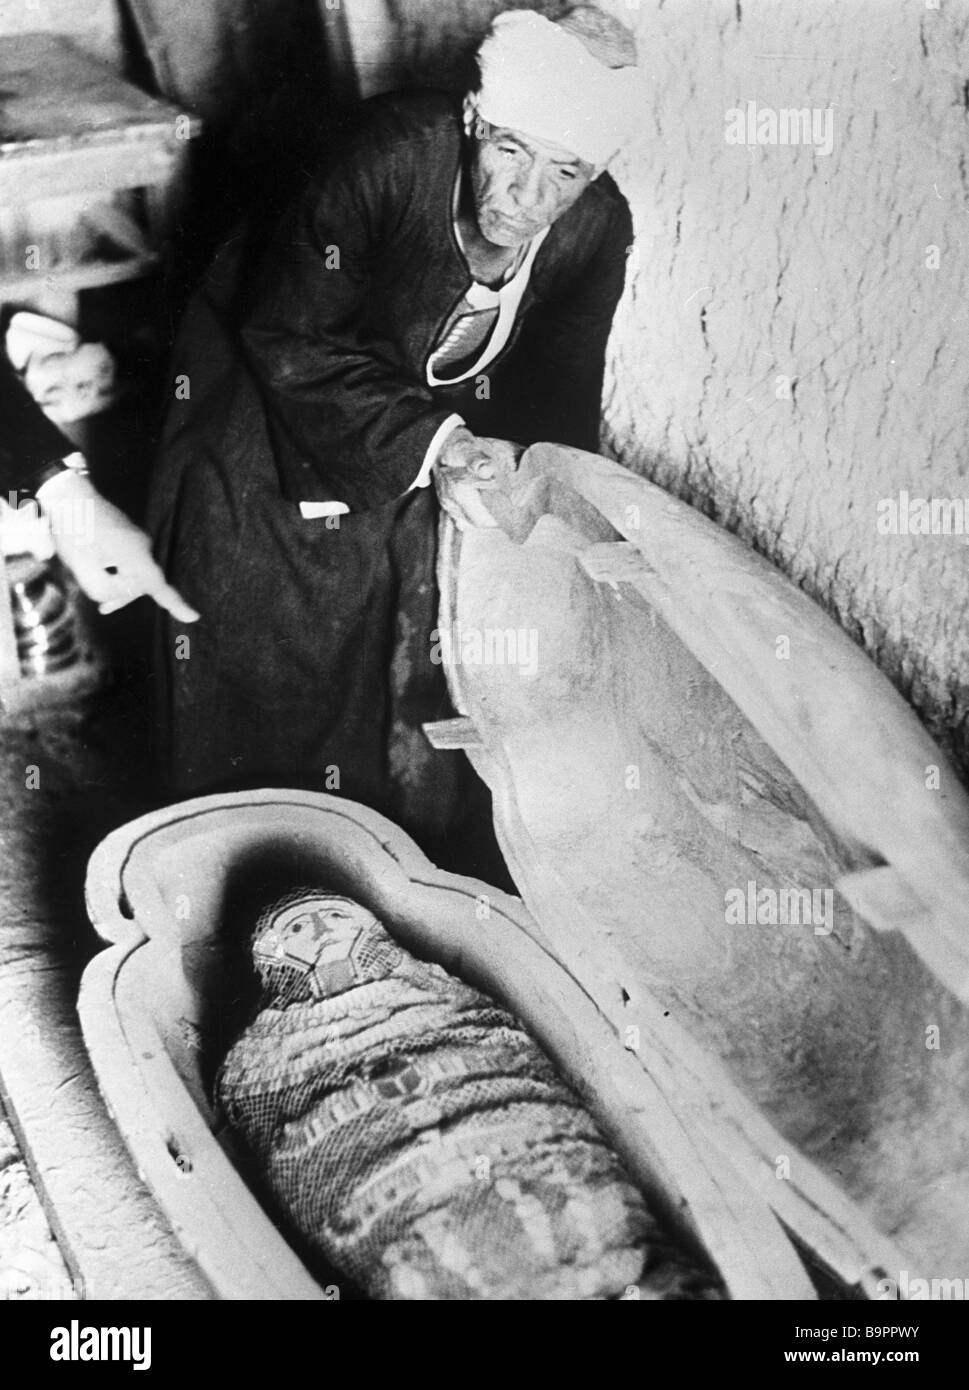 A 7th century B C mummy dug out by Egyptologist Ahmad Moussa in Cairo s environs - Stock Image